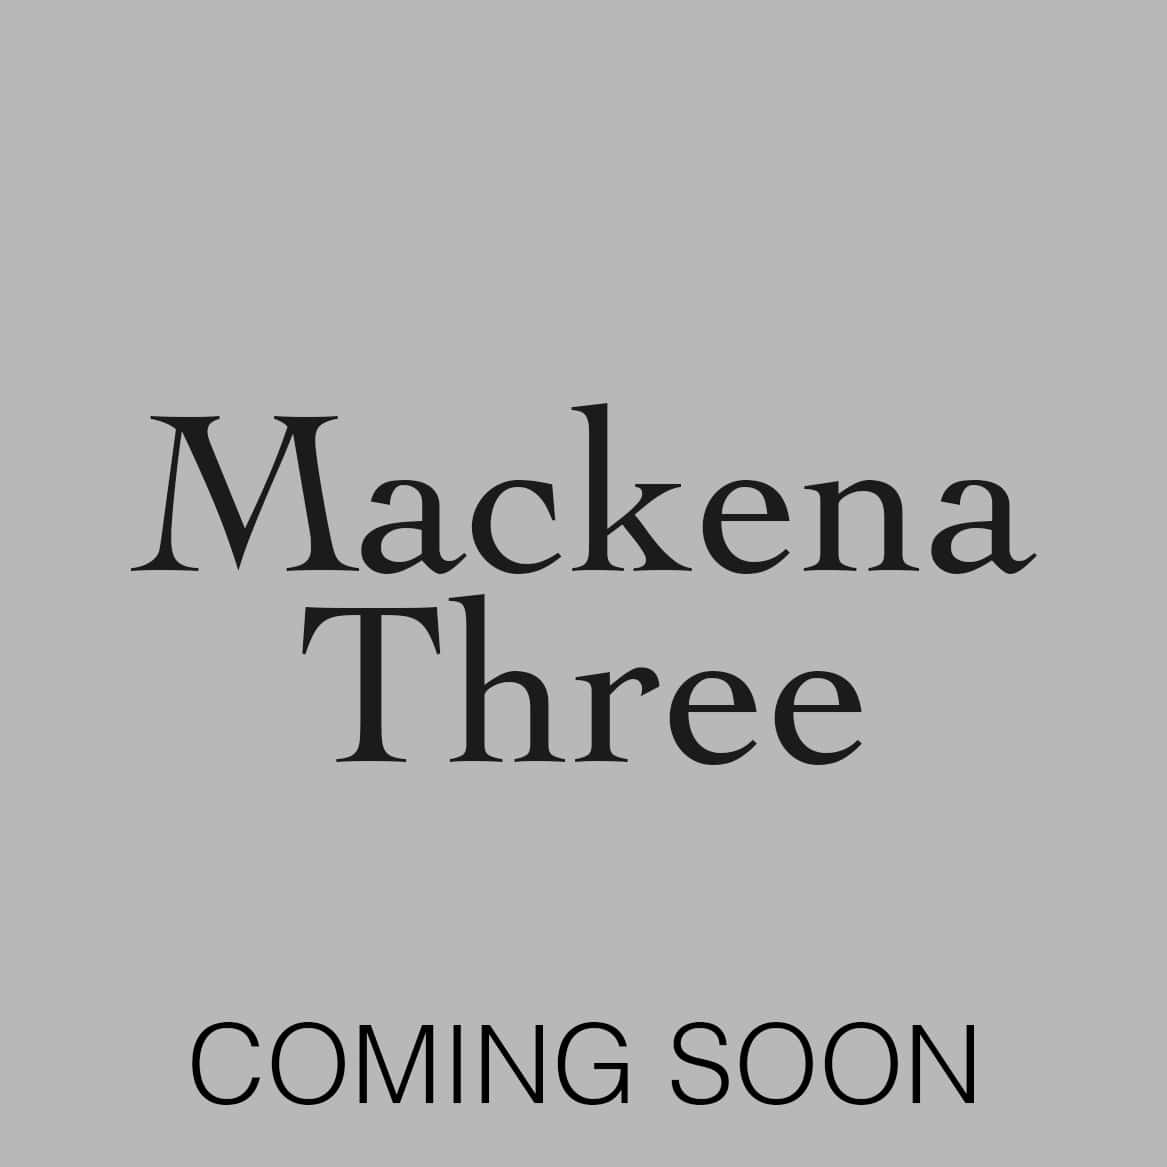 Mackena 3 - Content Cover_Coming Soon-min.jpg